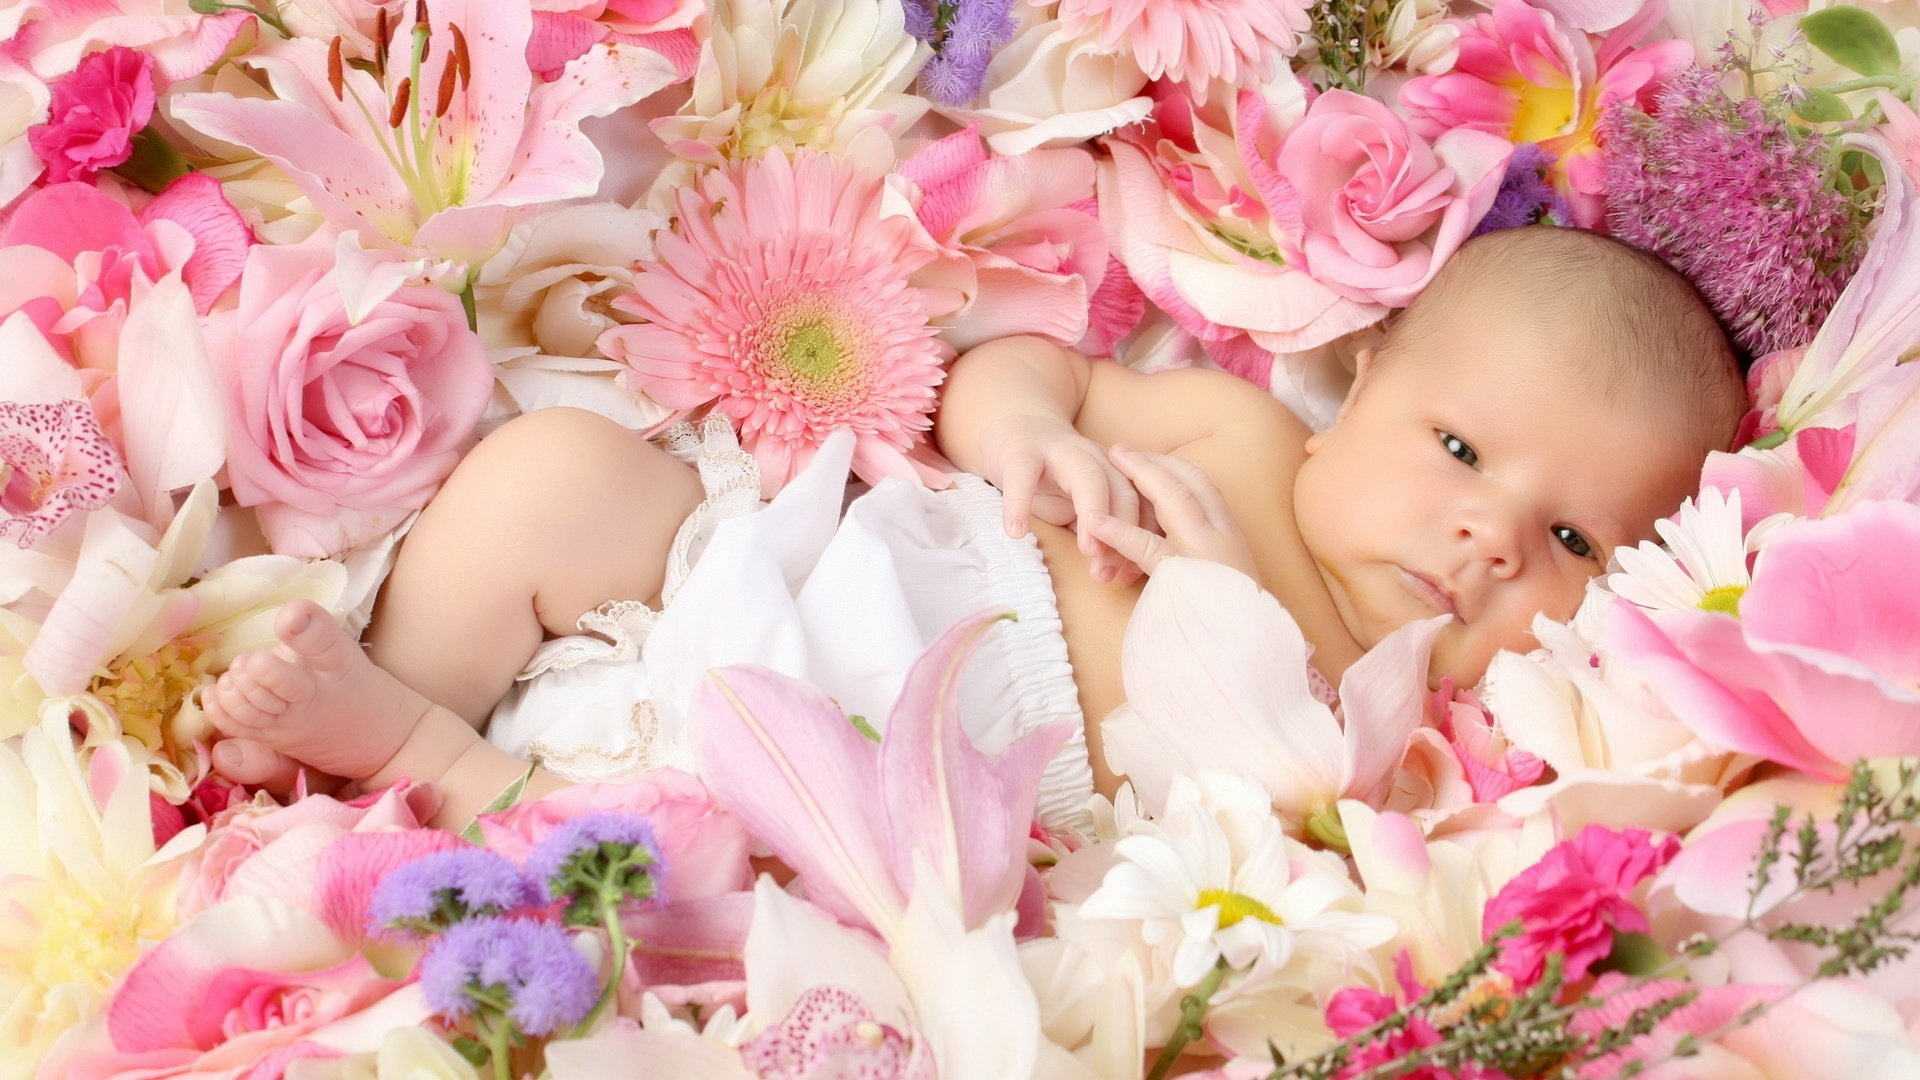 Cute Flower Wallpapers Desktop   ImgHD Browse and Download 1920x1080